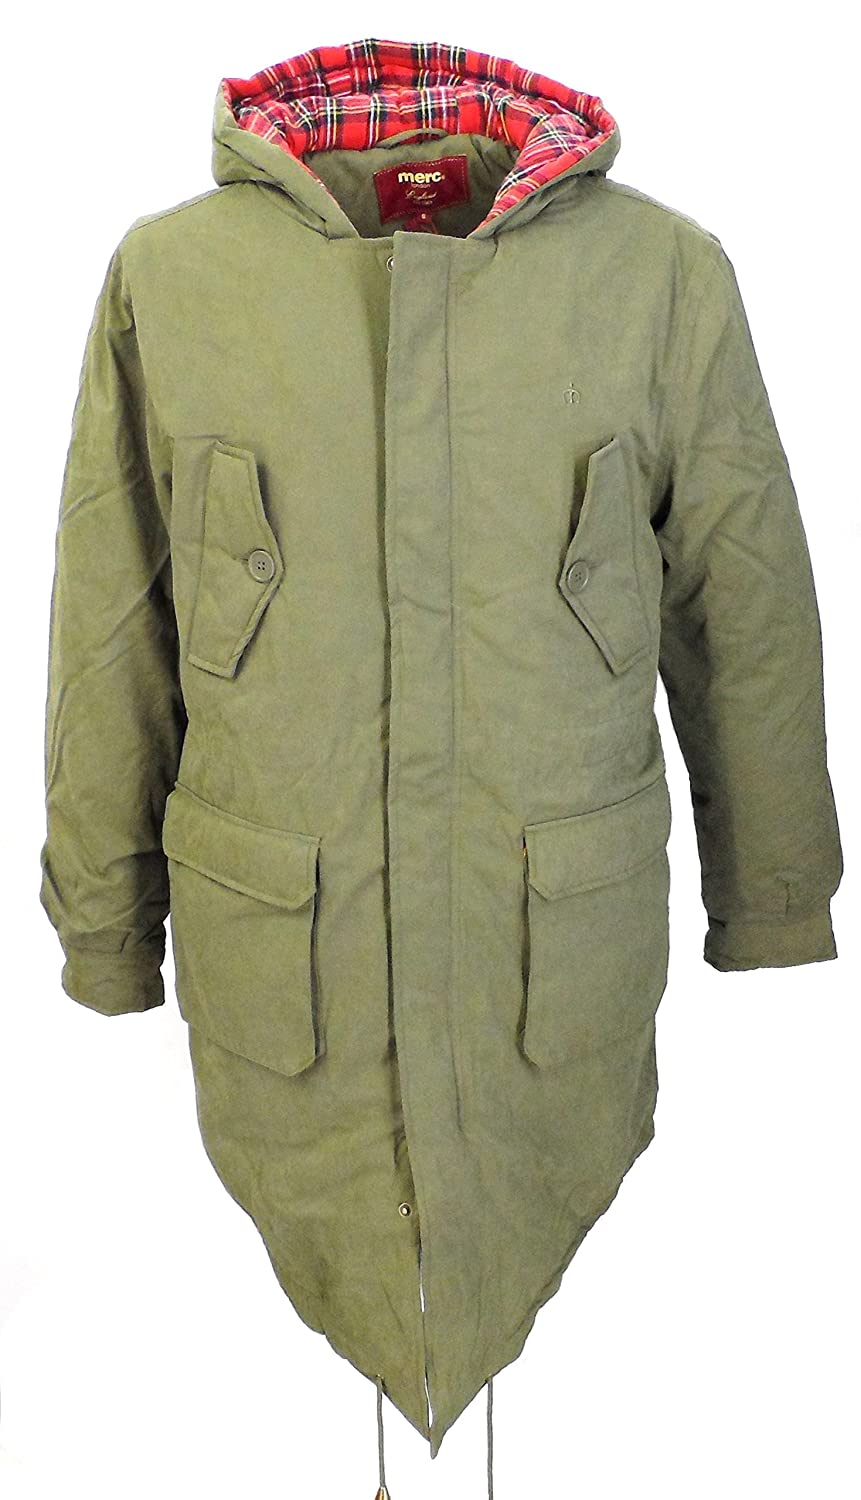 New Merc London M51 Style Mod Fishtail Parka Olive Green S: Amazon ...